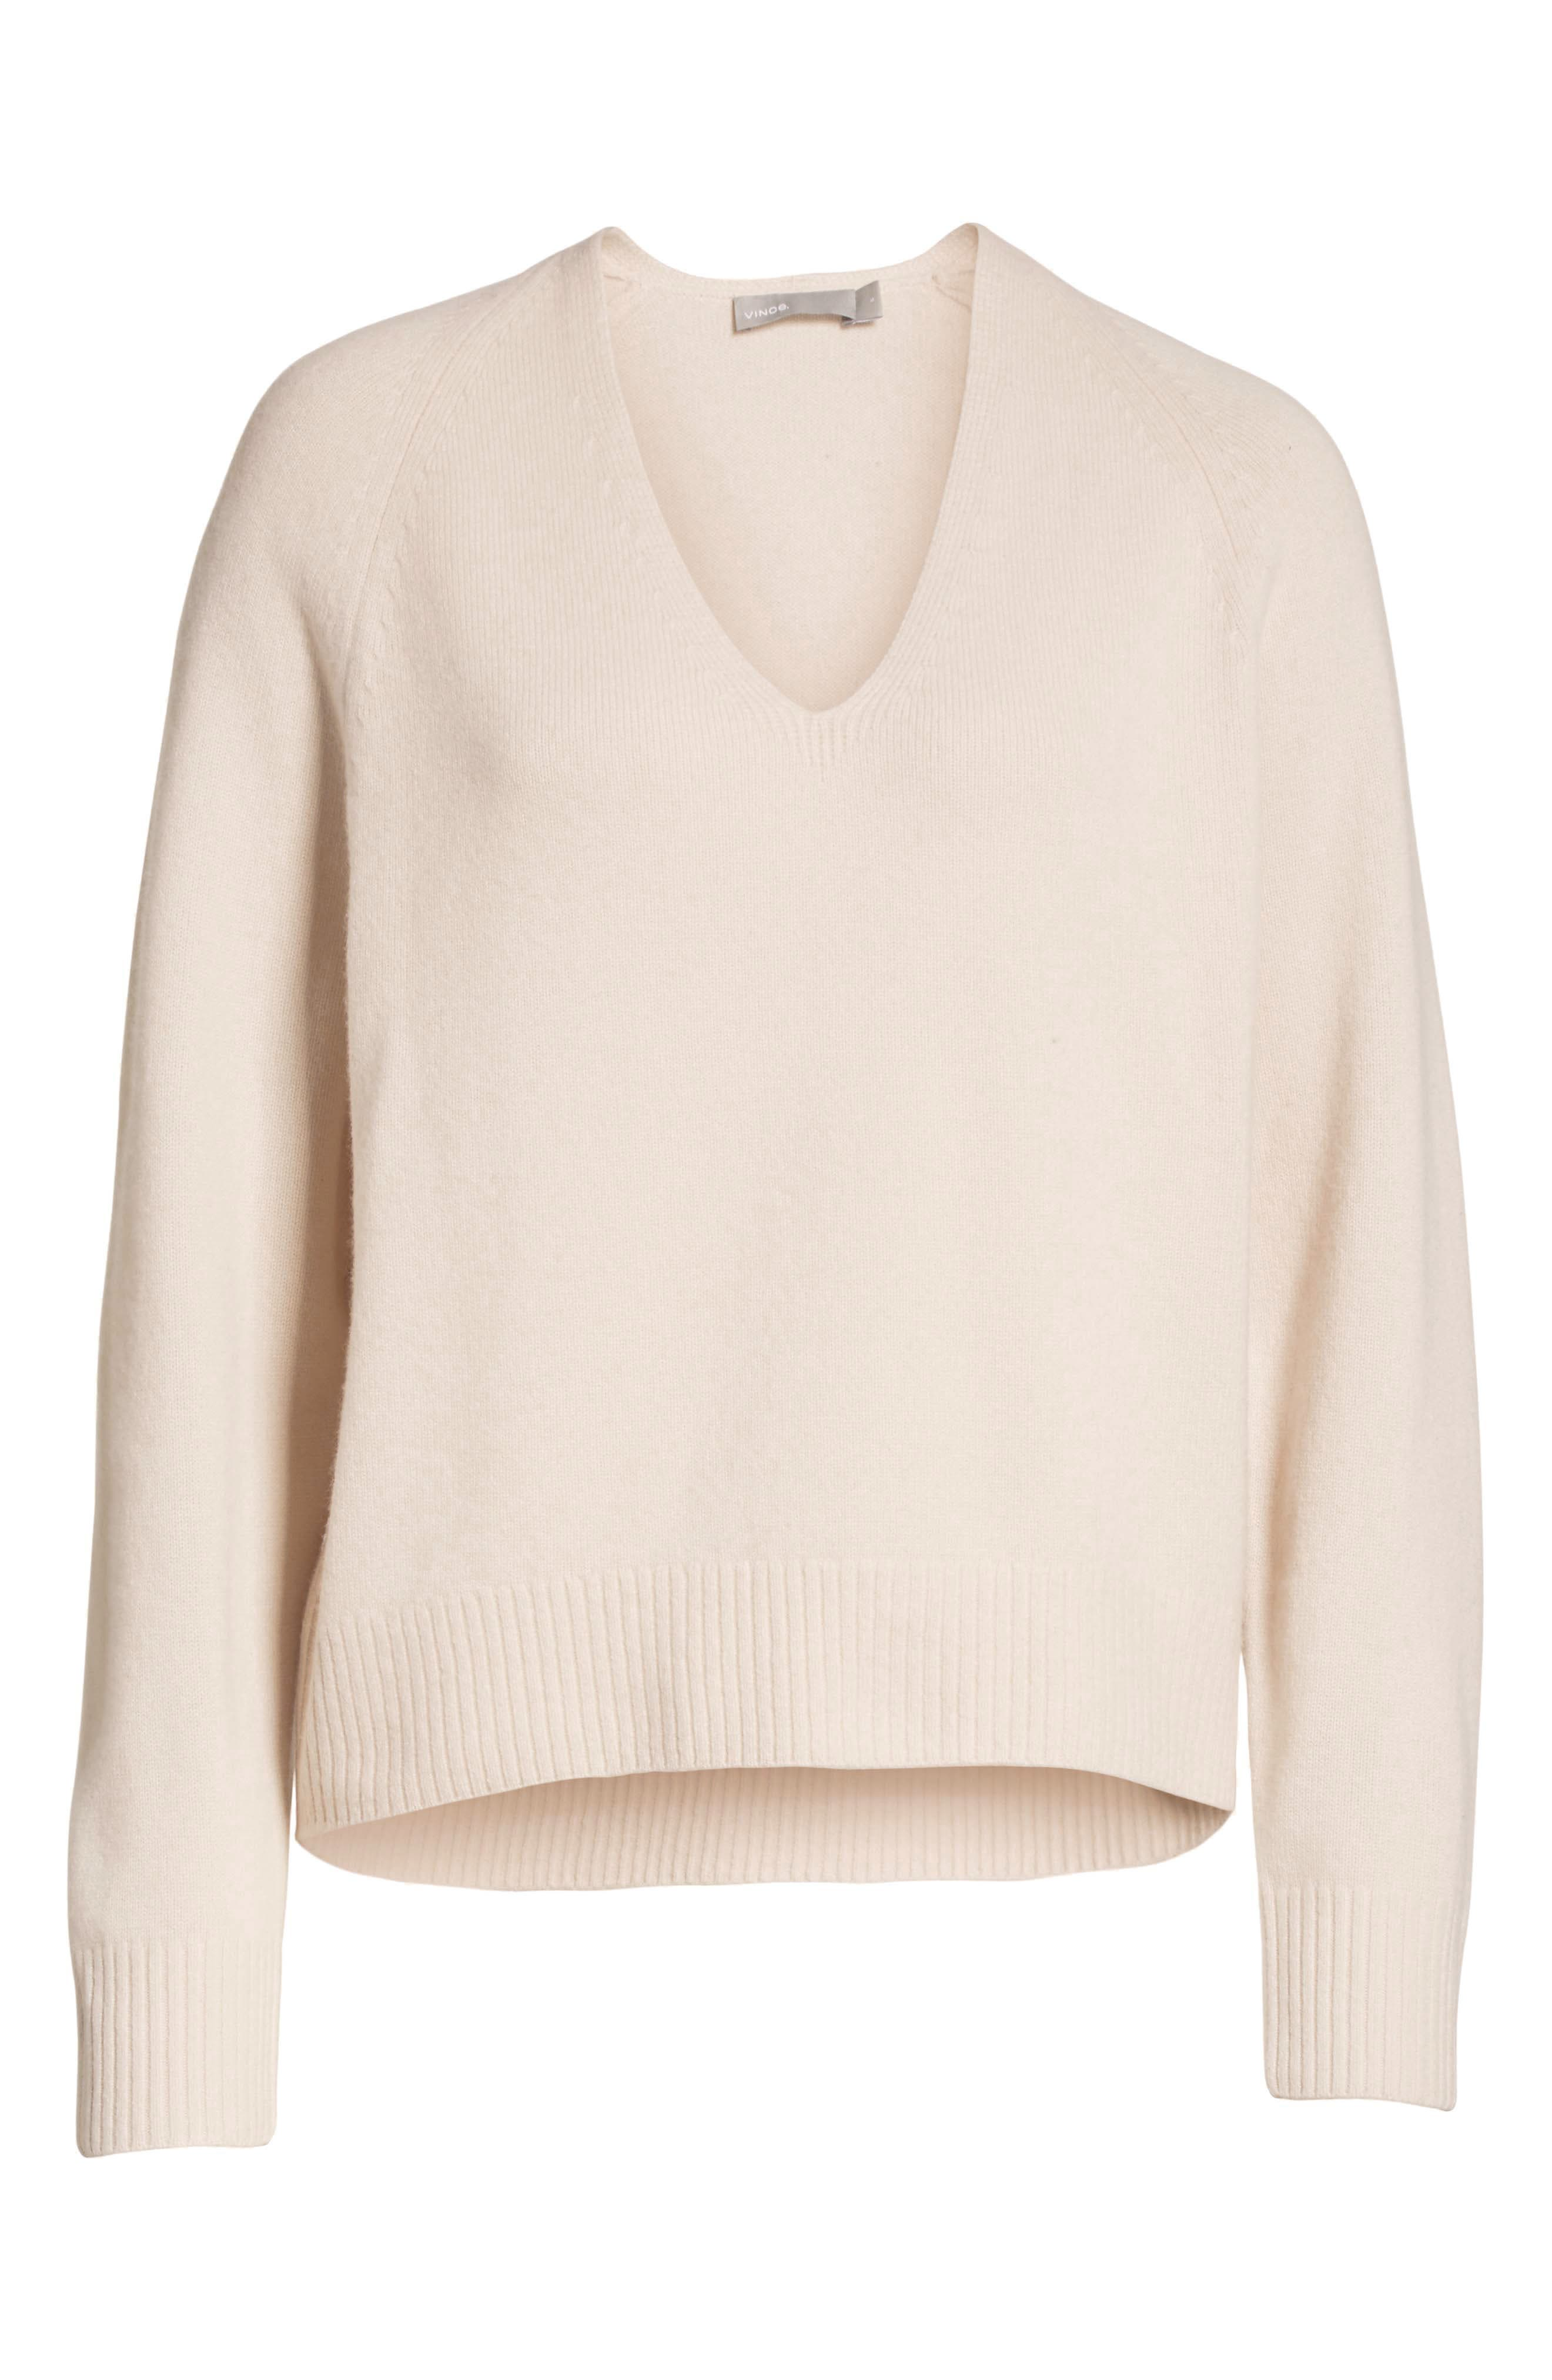 Cashmere Raglan Sleeve Sweater,                             Alternate thumbnail 6, color,                             SANDSTONE